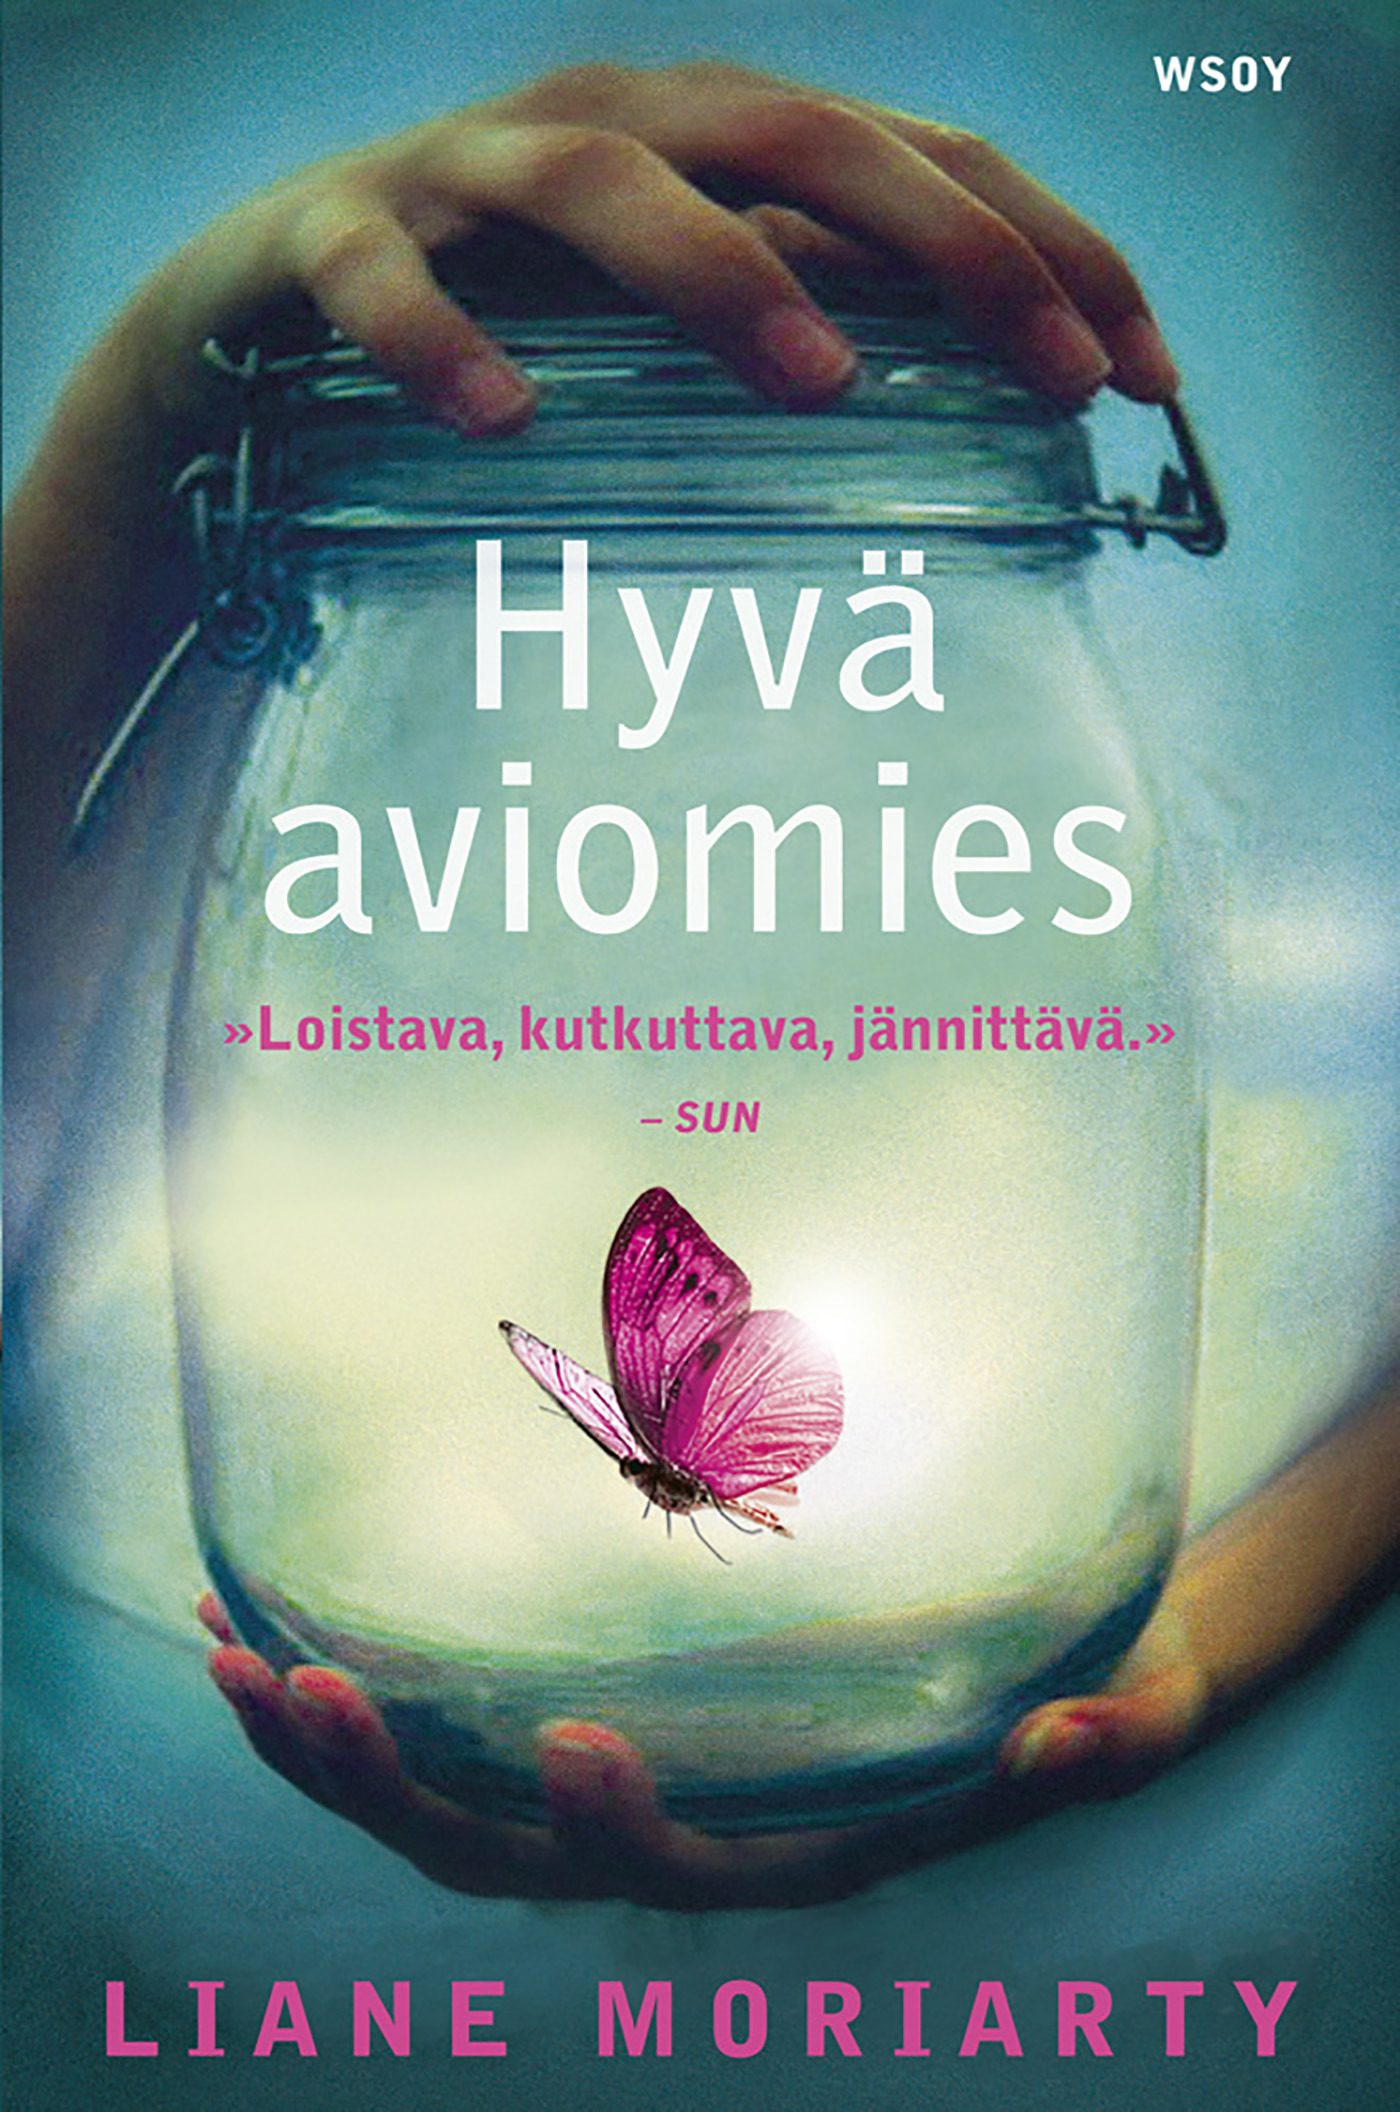 Moriarty, Liane - Hyvä aviomies, ebook